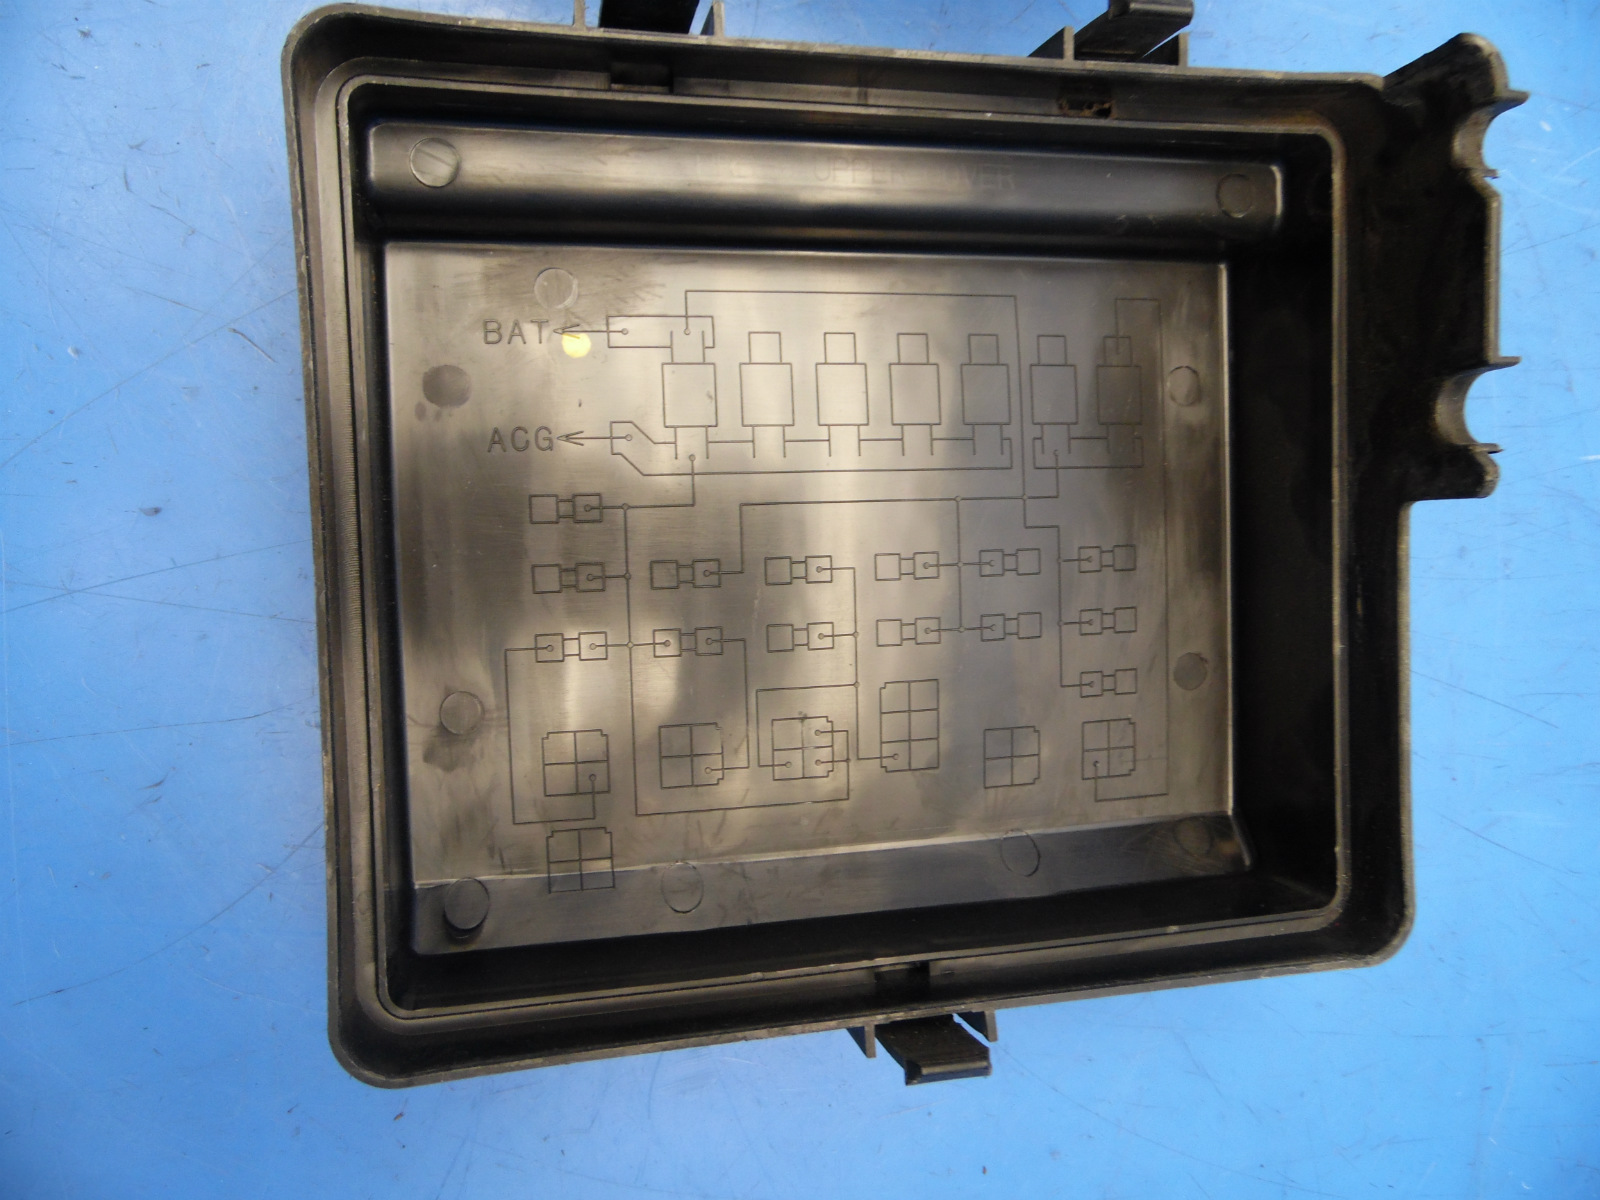 Crf450x Wiring Diagram Besides Fuse Panel Diagram Together With 1996